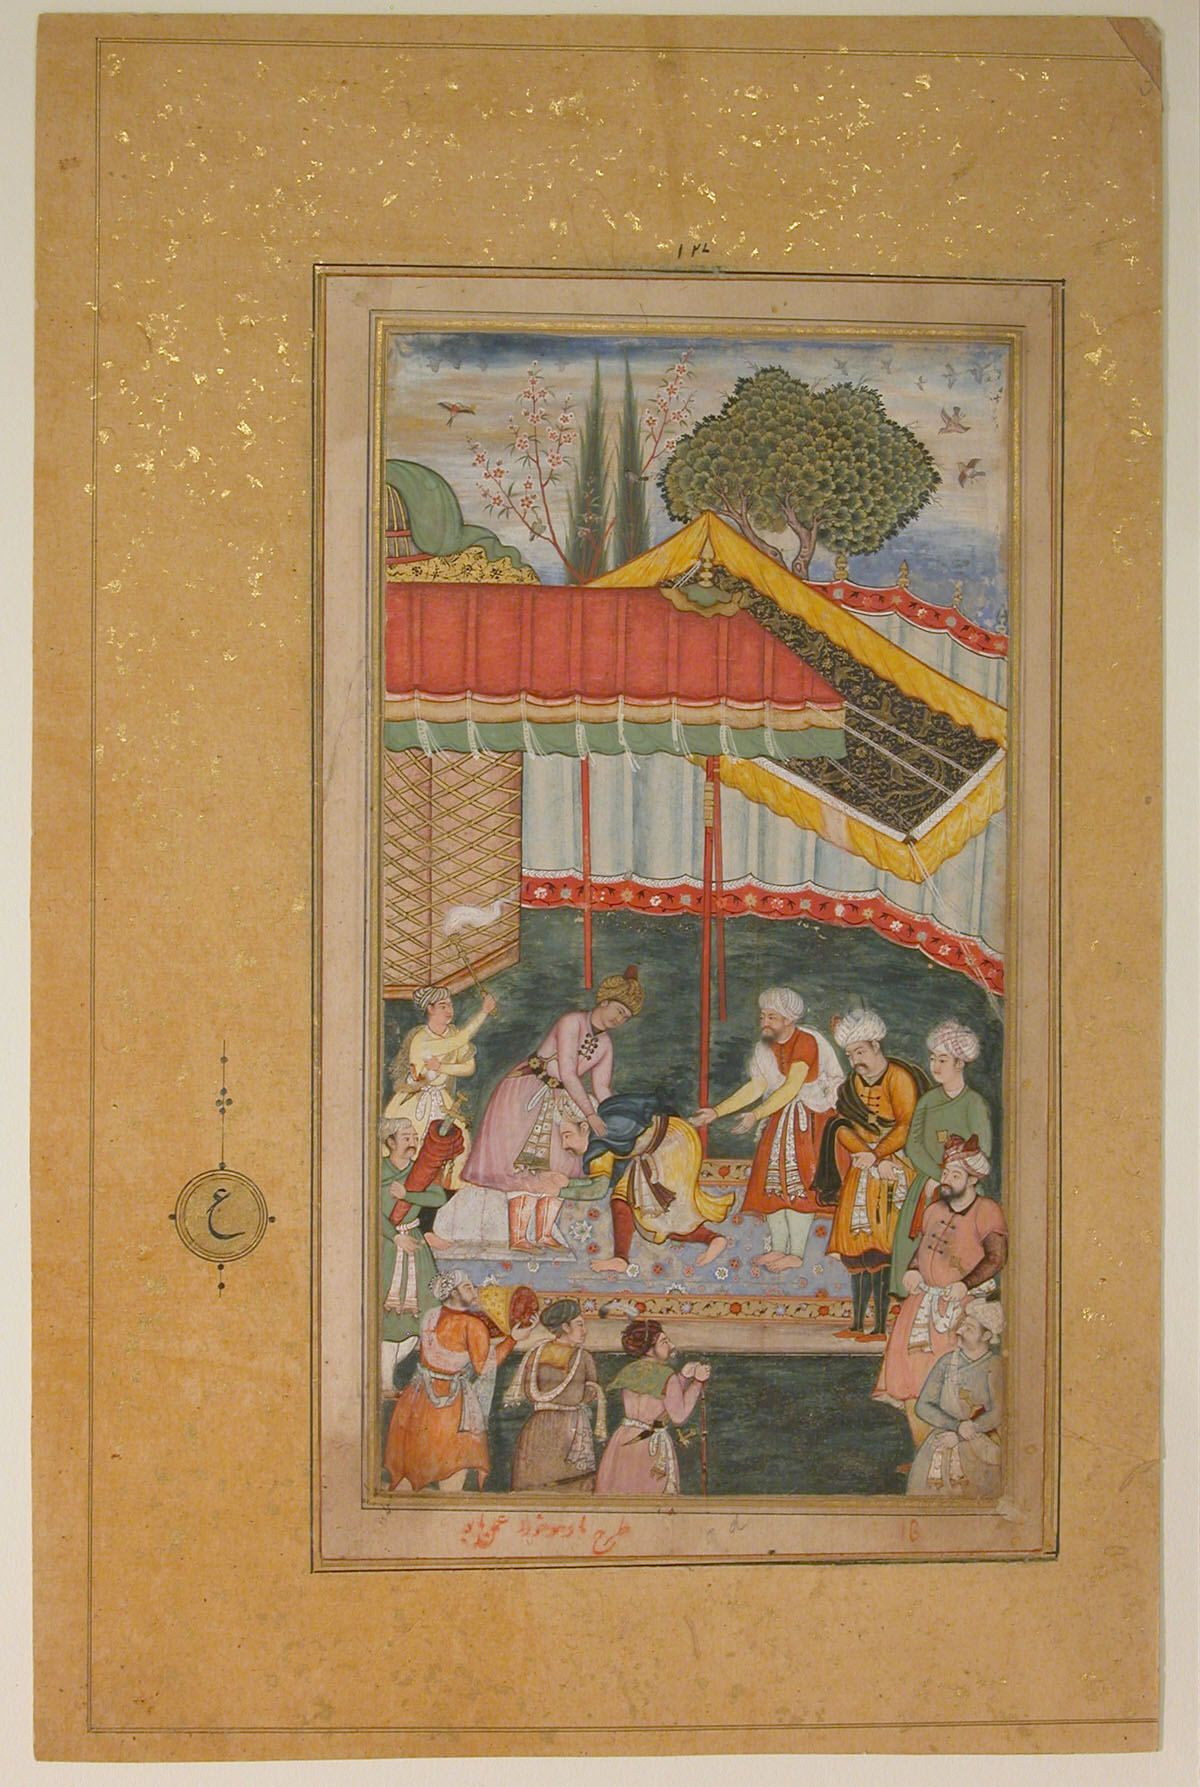 Emperor Babur Receiving a Visitor\